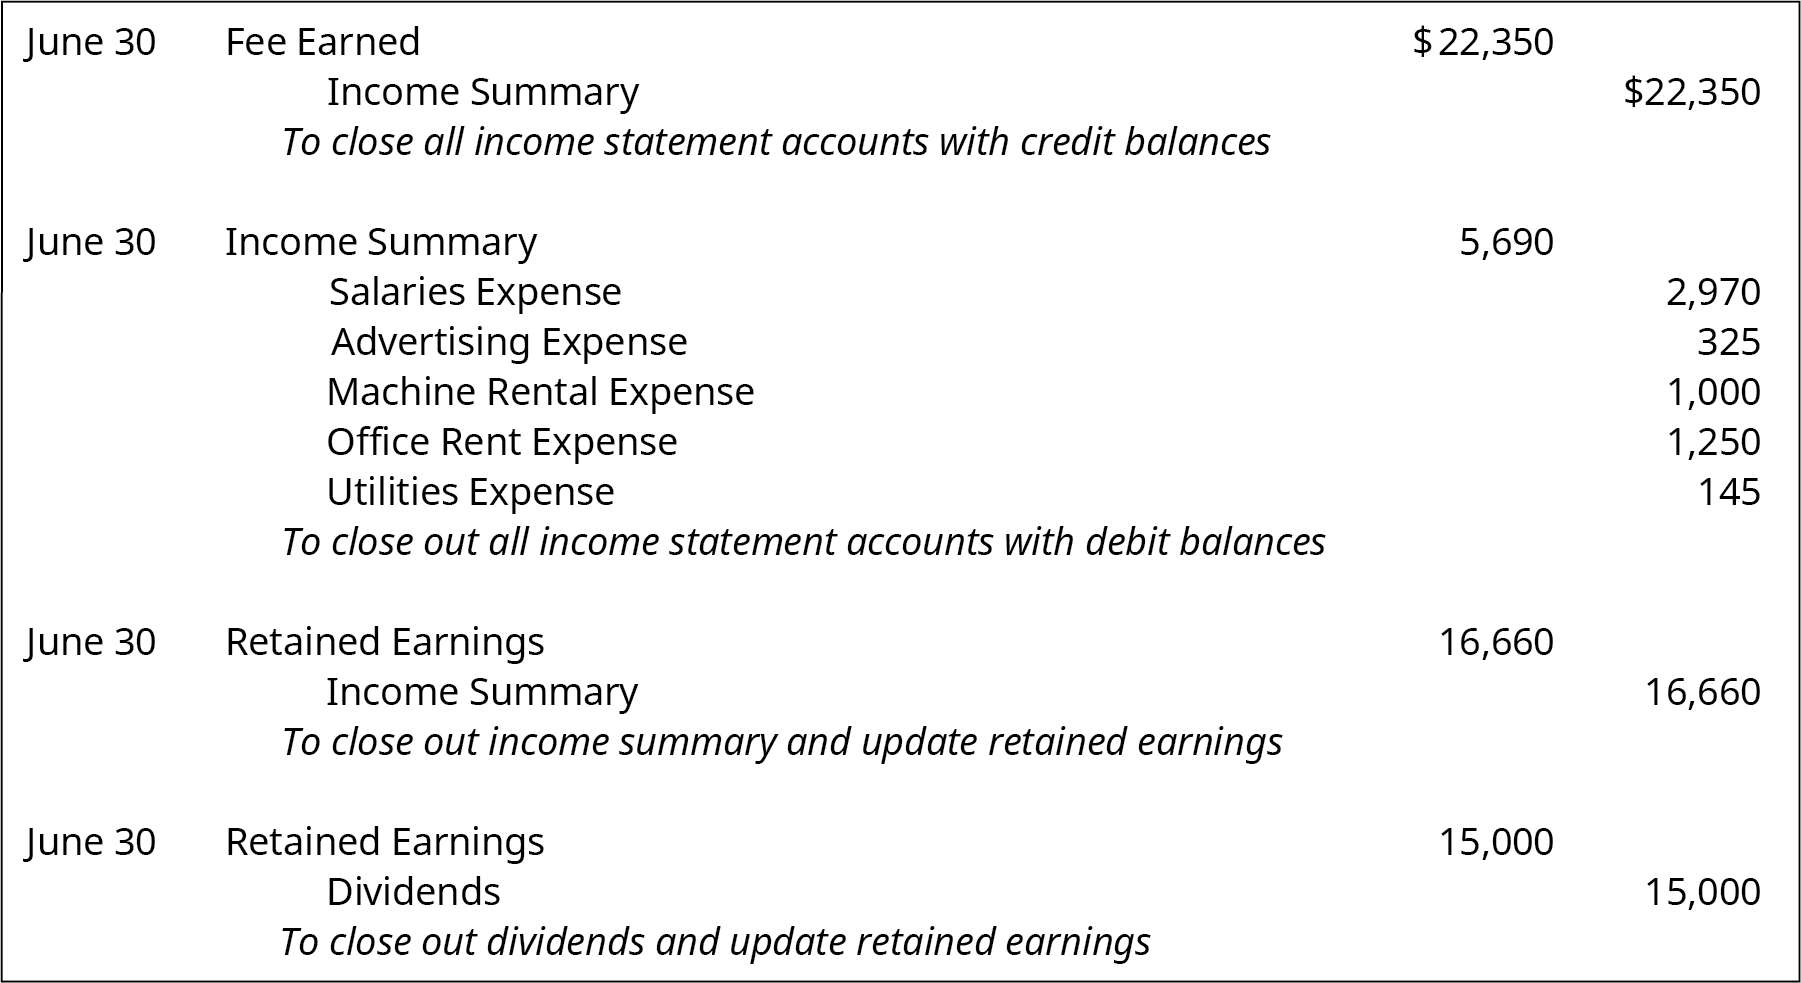 """June 30 debit Fee earned 22,350, credit Income Summary 22,350. Explanation: """"To close all income statement accounts with credit balances."""" June 30 debit Income Summary 5,690, credit Salaries Expense 2,970, Advertising Expense 325, Machine Rental Expense 1,000, Office Rent Expense 1,250, and Utilities expense 145. Explanation: """"To close out all income statement accounts with debit balances."""" June 30 debit Retained Earnings 16,660, Credit Income Summary 16,660. Explanation: """"To close out income summary and update retained earnings."""" June 30 debit Retained Earnings 15,000 and credit Dividends 15,000. Explanation: """"To close out dividends and update retained earnings."""""""